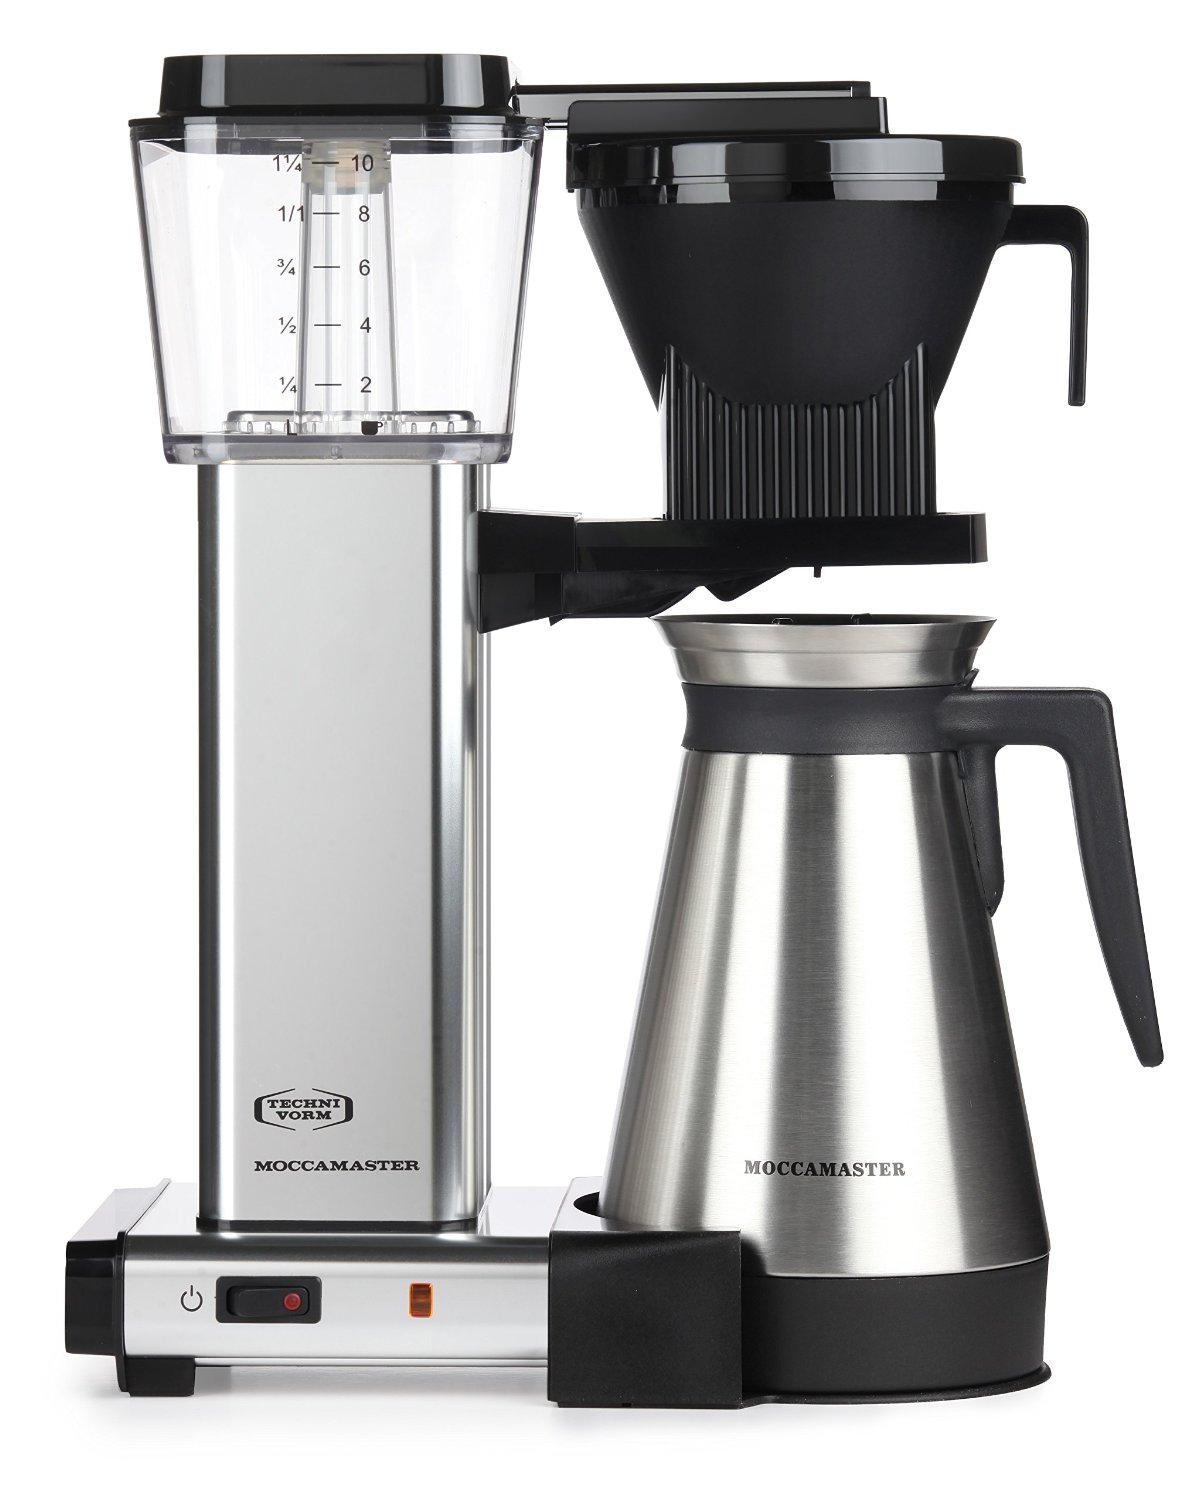 Moccamaster KBGT 10-Cup Coffee Brewer